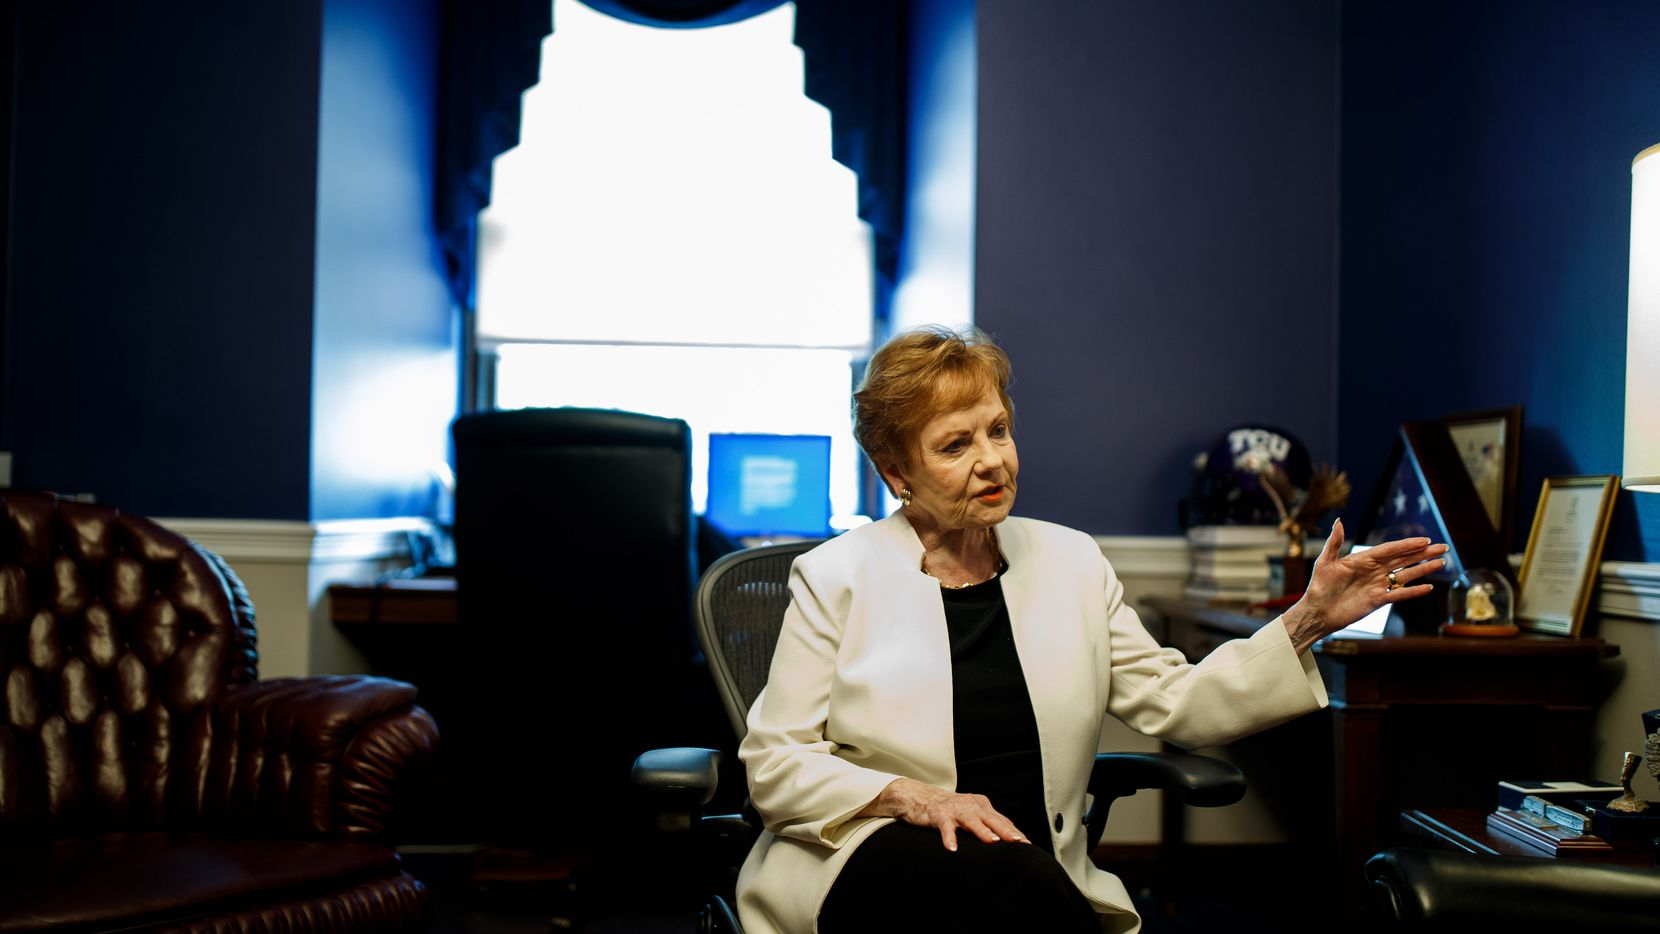 Rep. Kay Granger, R-Fort Worth, has now raised nearly $2.2 million this election cycle amid a tough primary challenge. (Ting Shen/ Special to The Dallas Morning News)